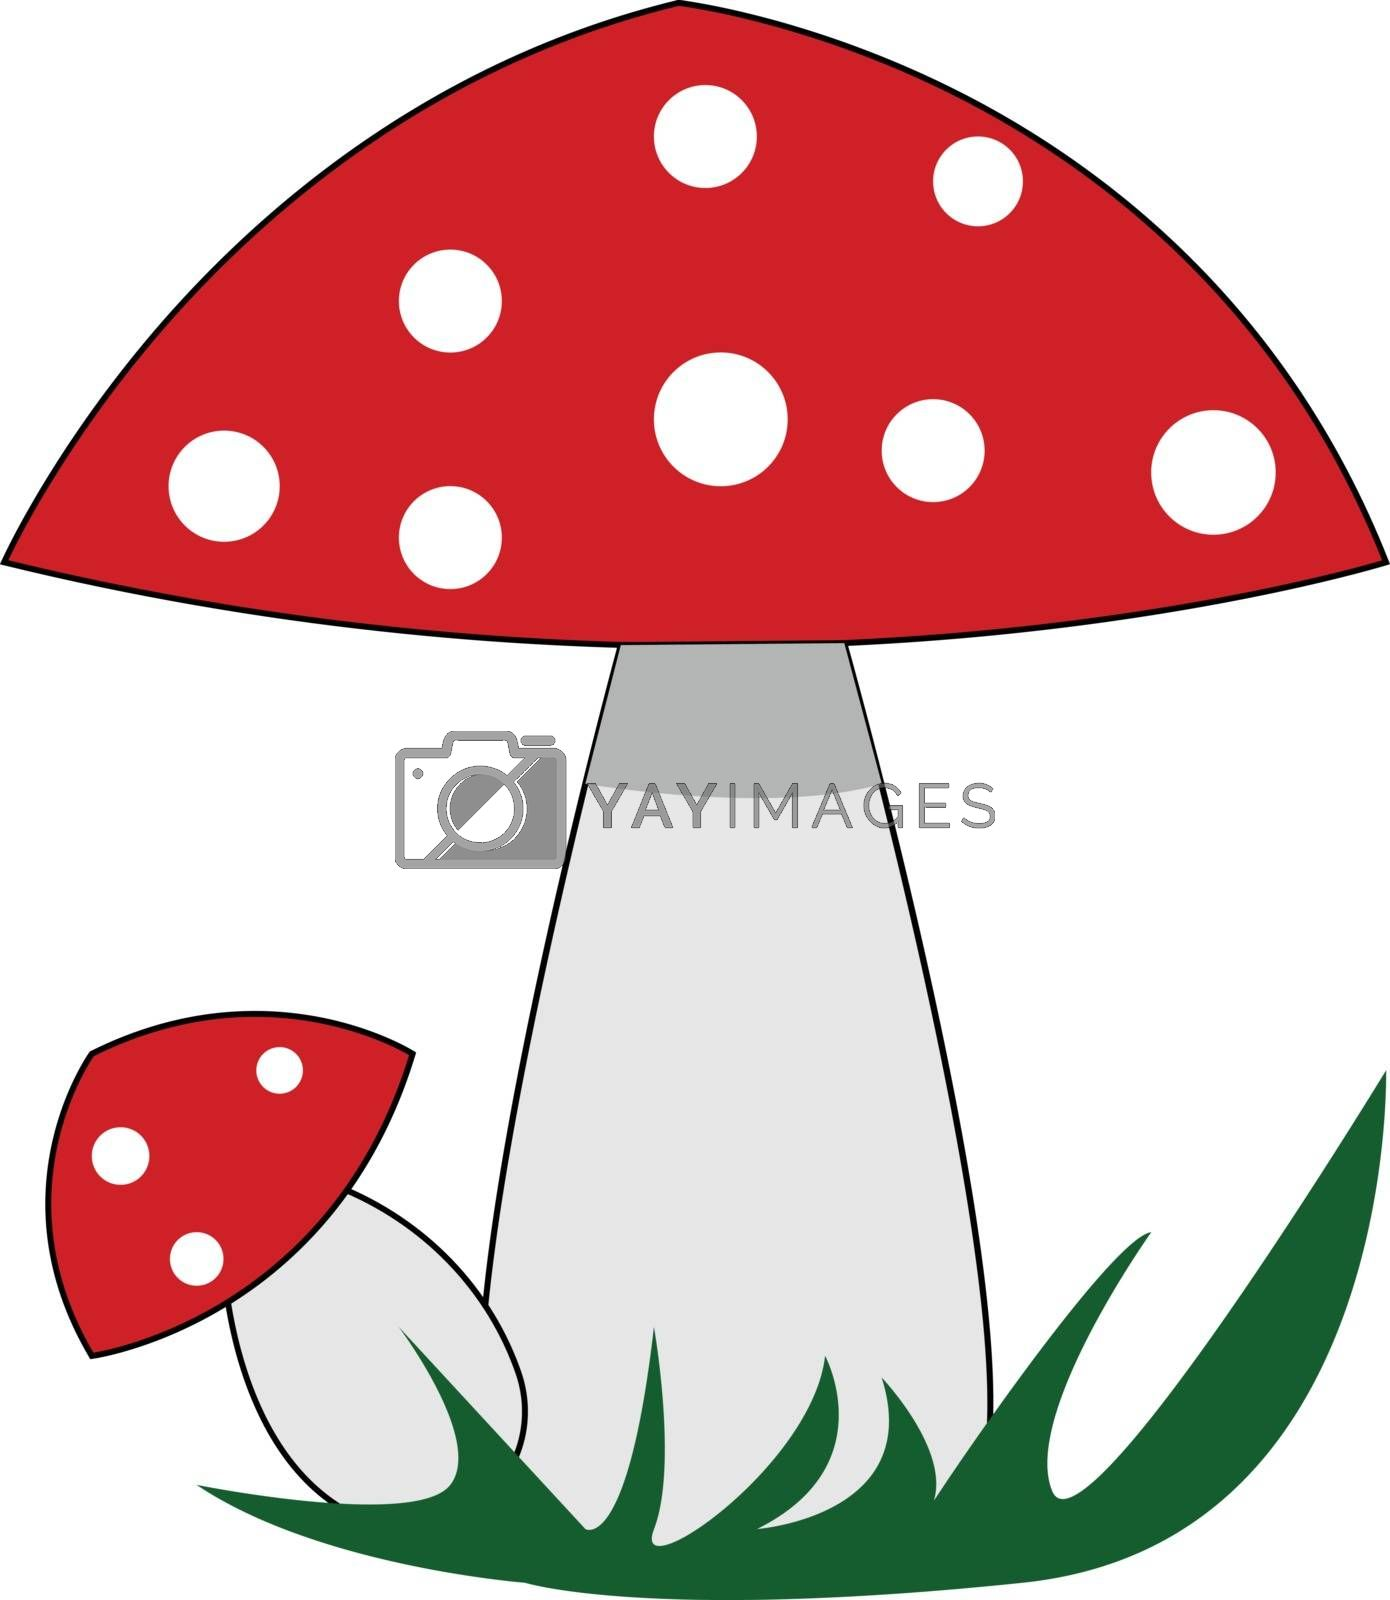 Royalty free image of Red mushrooms with white polka dots illustration vector on white by Morphart